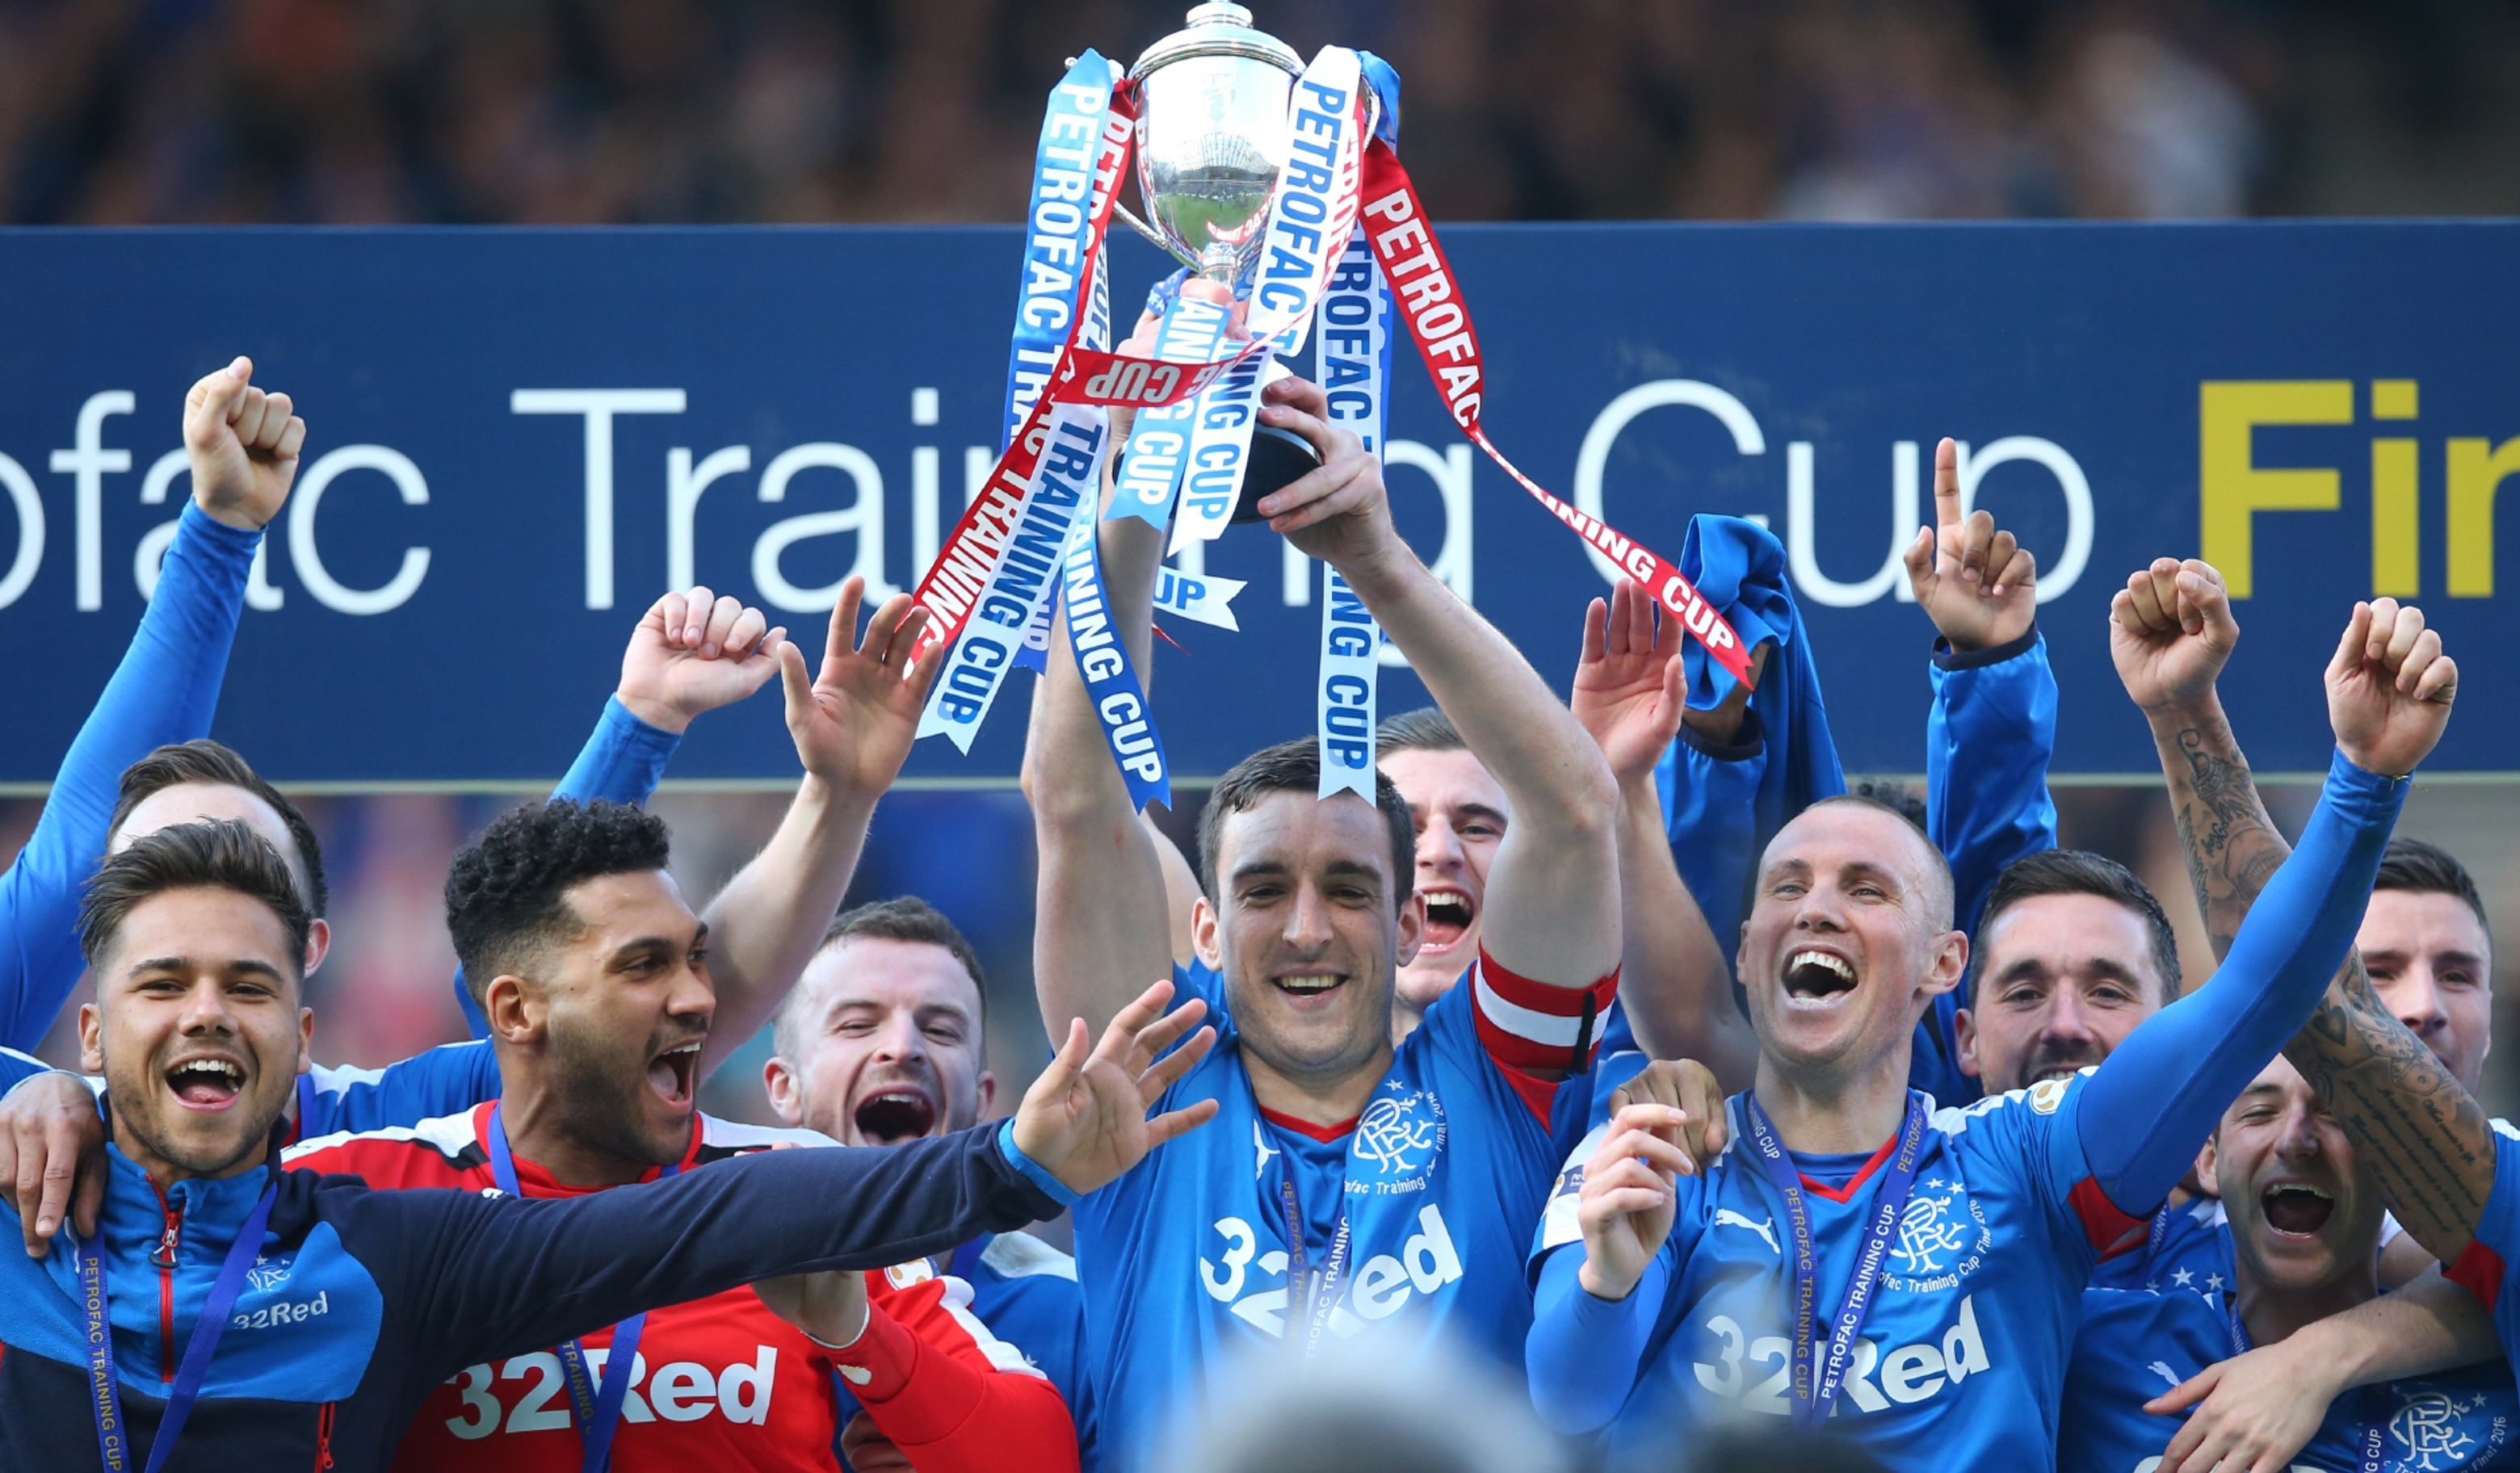 Rangers celebrate after winning last season's Petrofac Cup